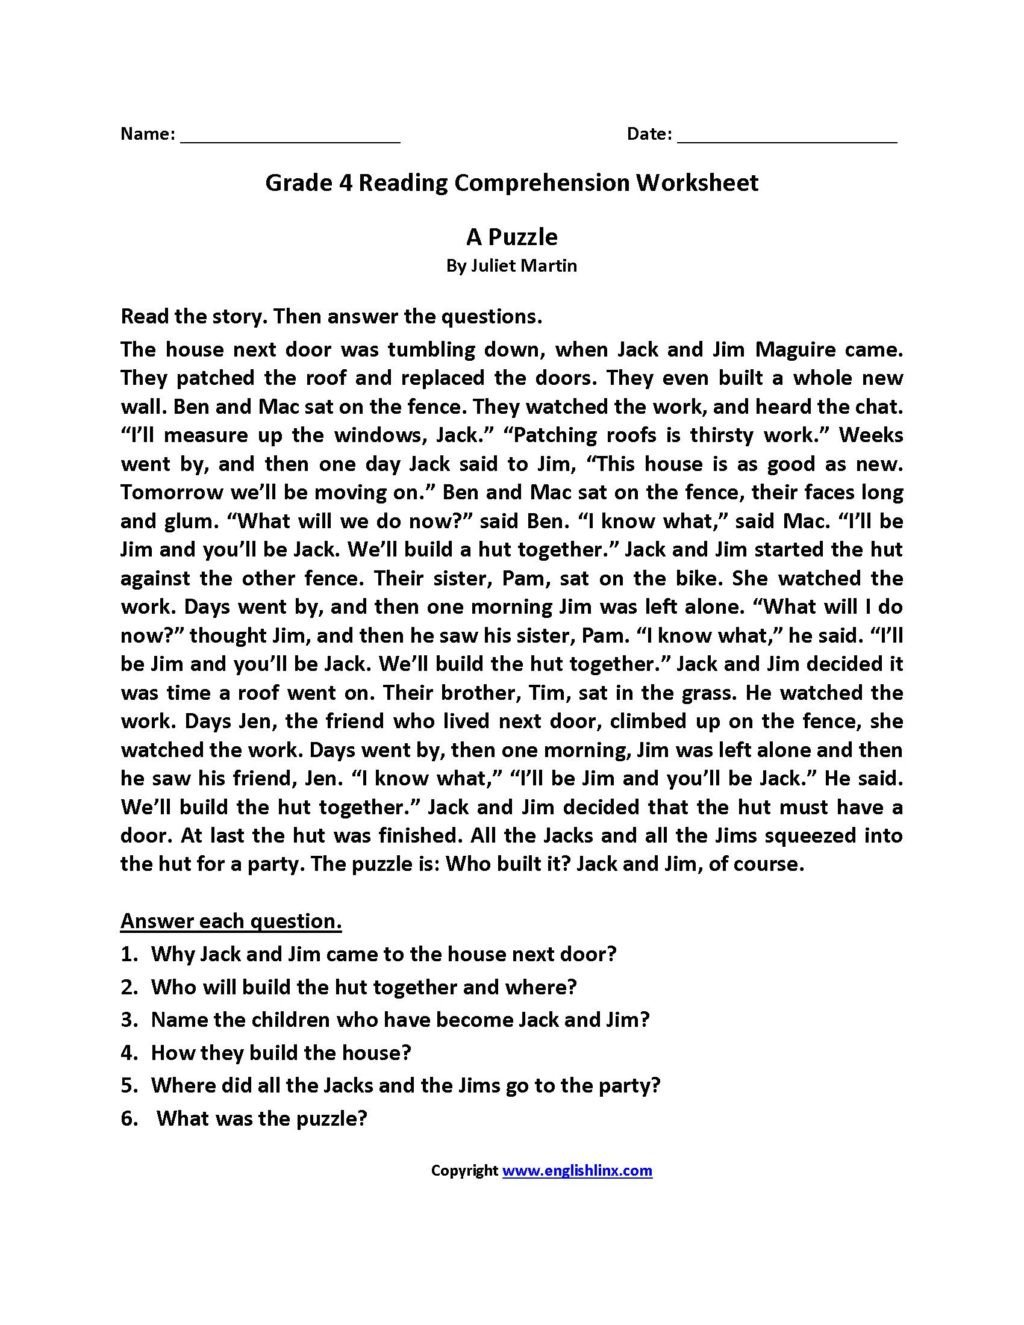 Reading Comprehension Worksheets 7th Grade Worksheet Stunning Third Grade Reading Prehensionets